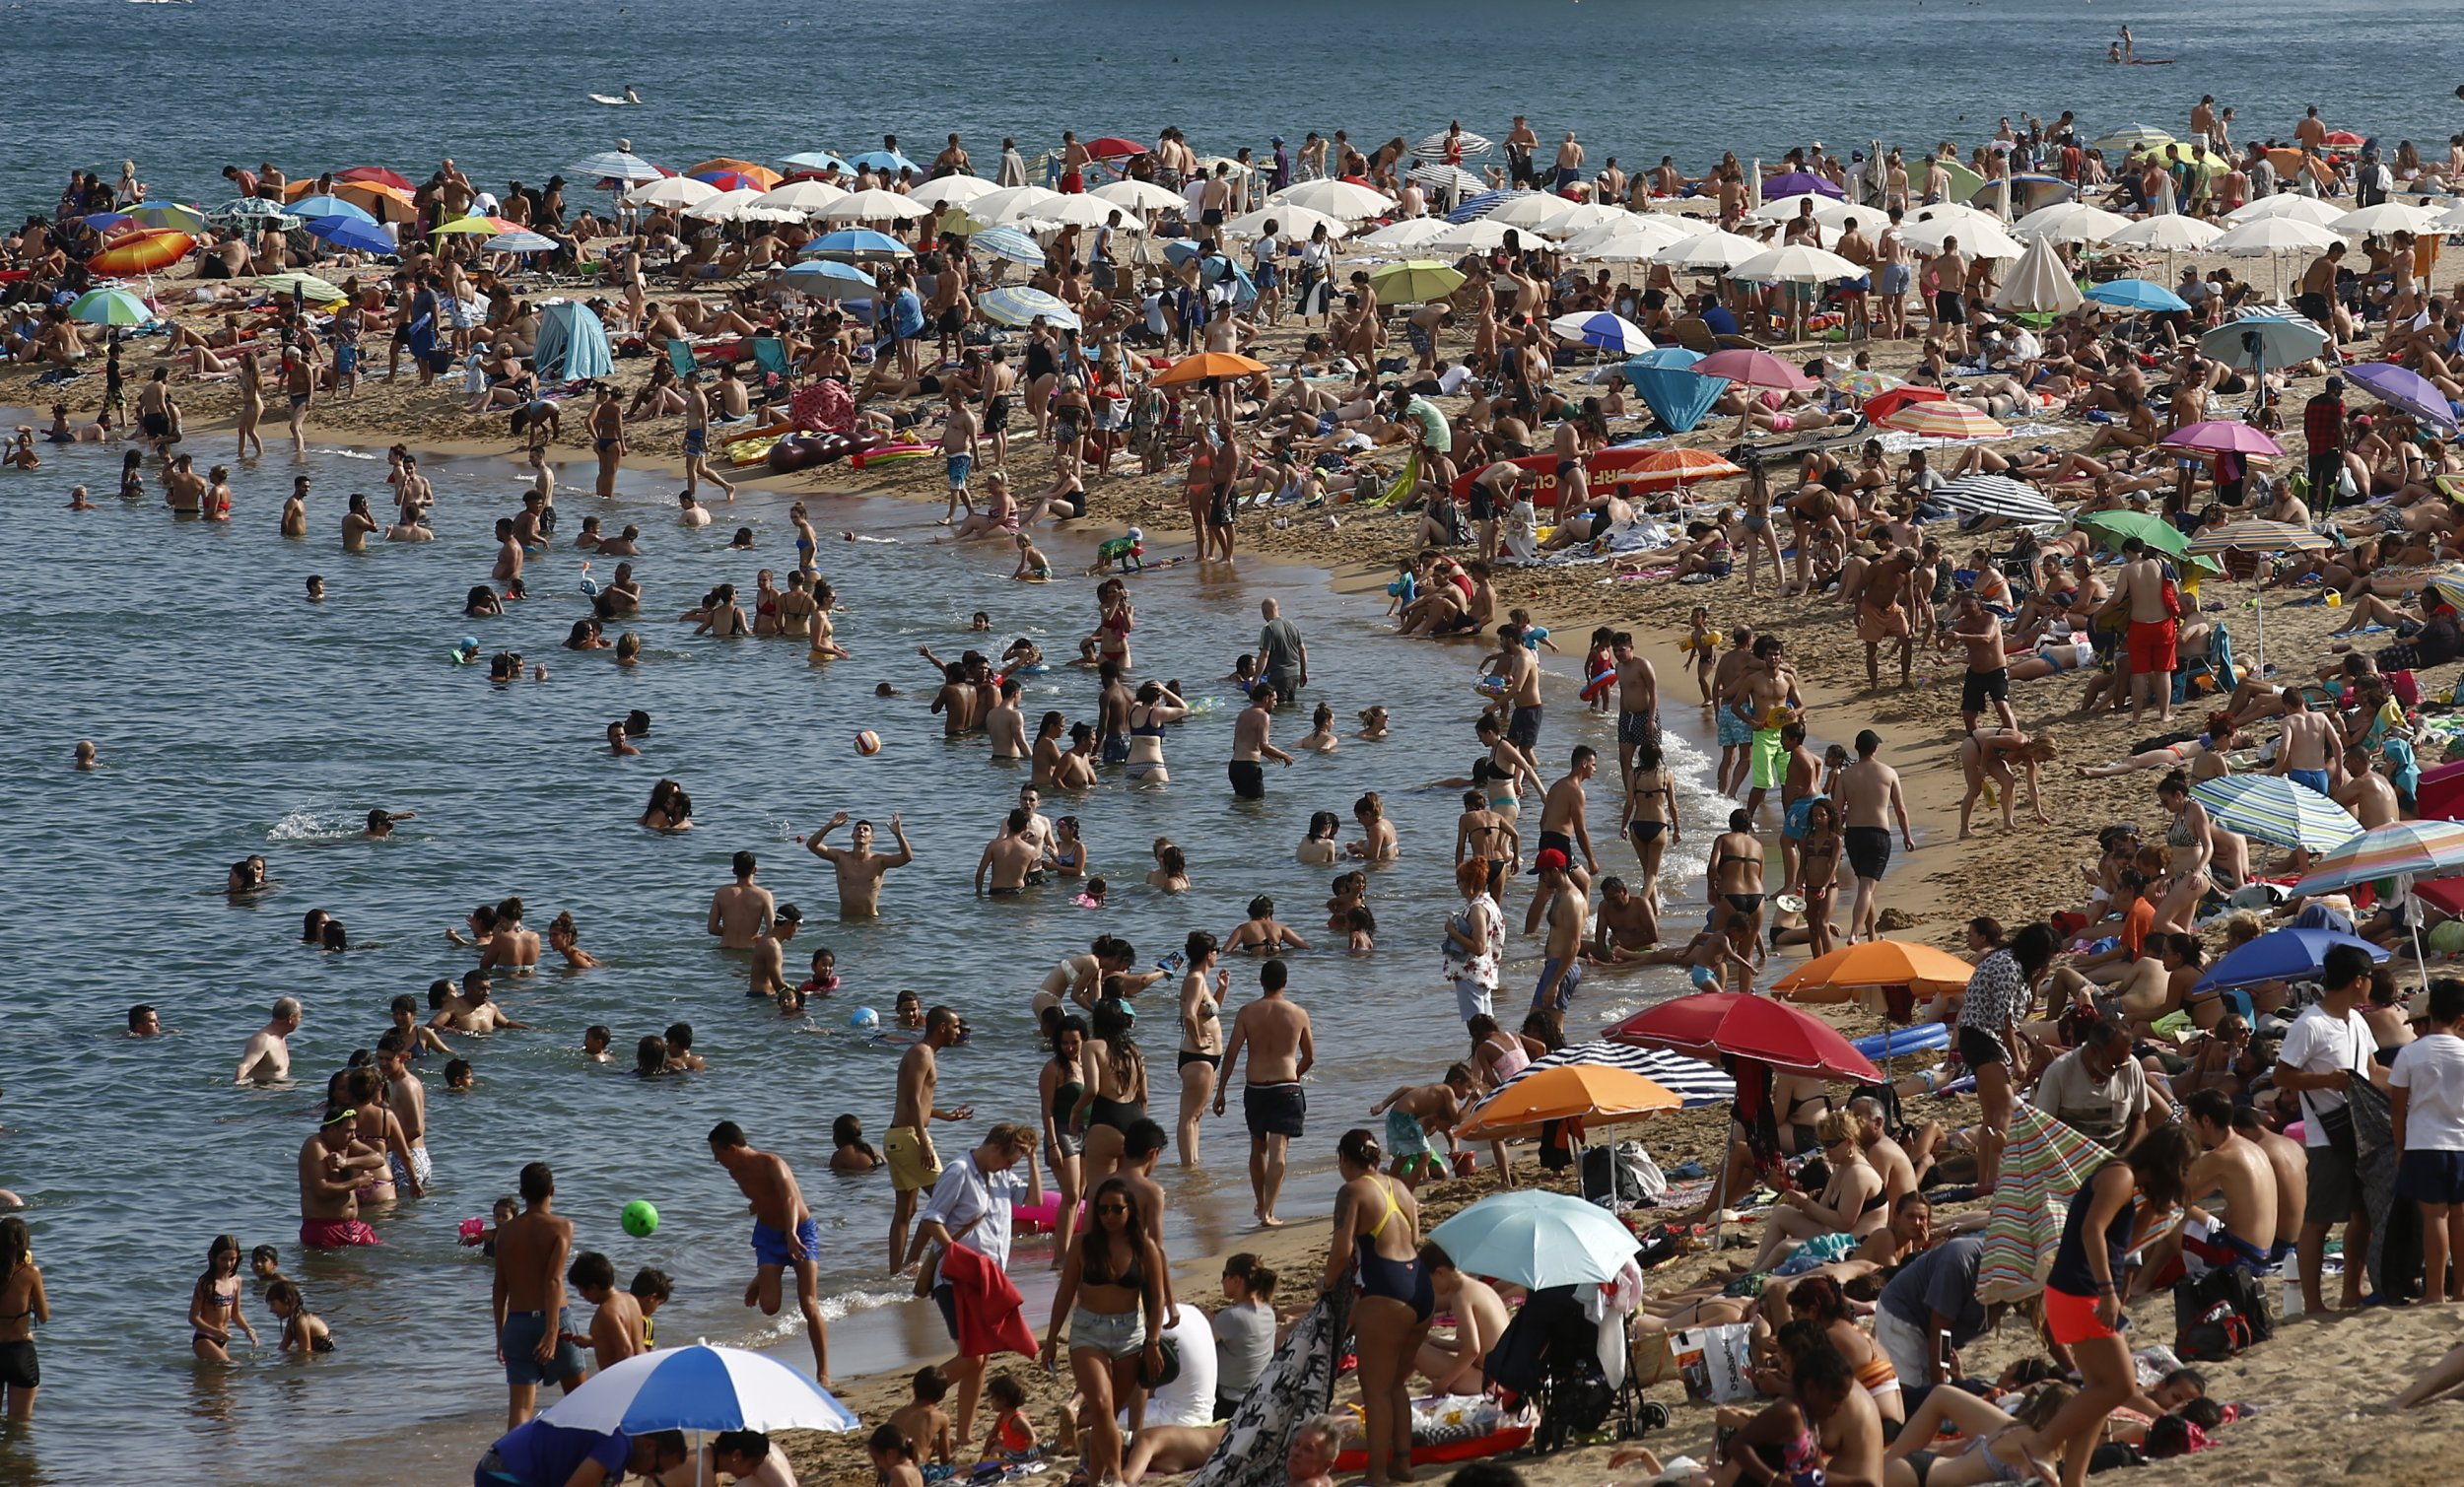 People sunbathe on a beach in Barcelona, Spain, Wednesday, Aug. 1, 2018. Much of Spain is on alert as the country's weather agency warns that temperatures could surpass 40 degrees Celsius (104 Fahrenheit) due to a hot air mass moving northward from the African continent. (AP Photo/Manu Fernandez)